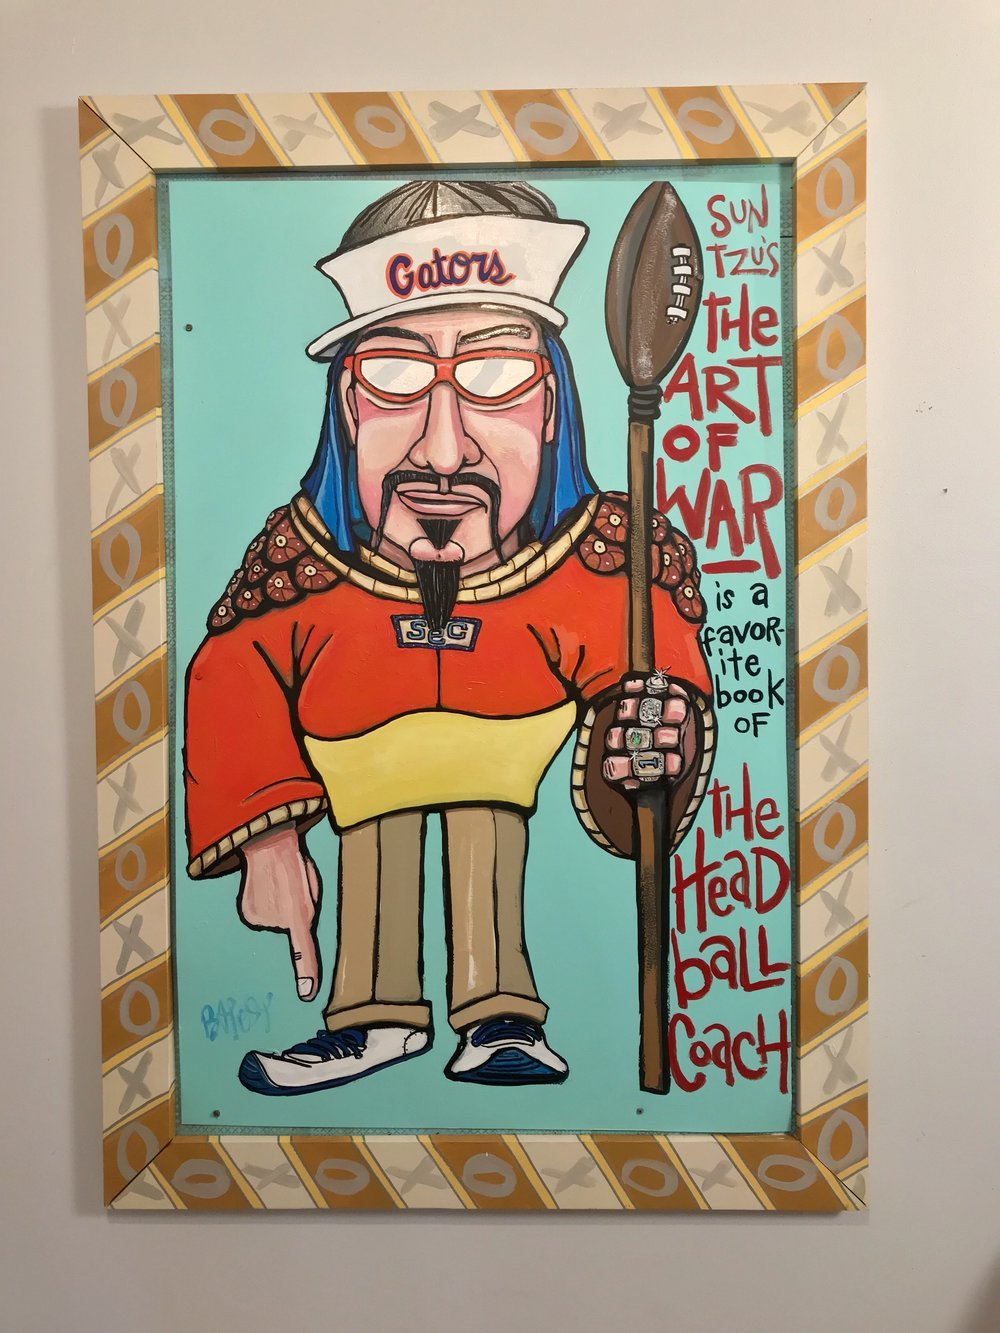 Head Ball Coach - The Art of War 3.3' x 4.4' - paint on wood - $2000